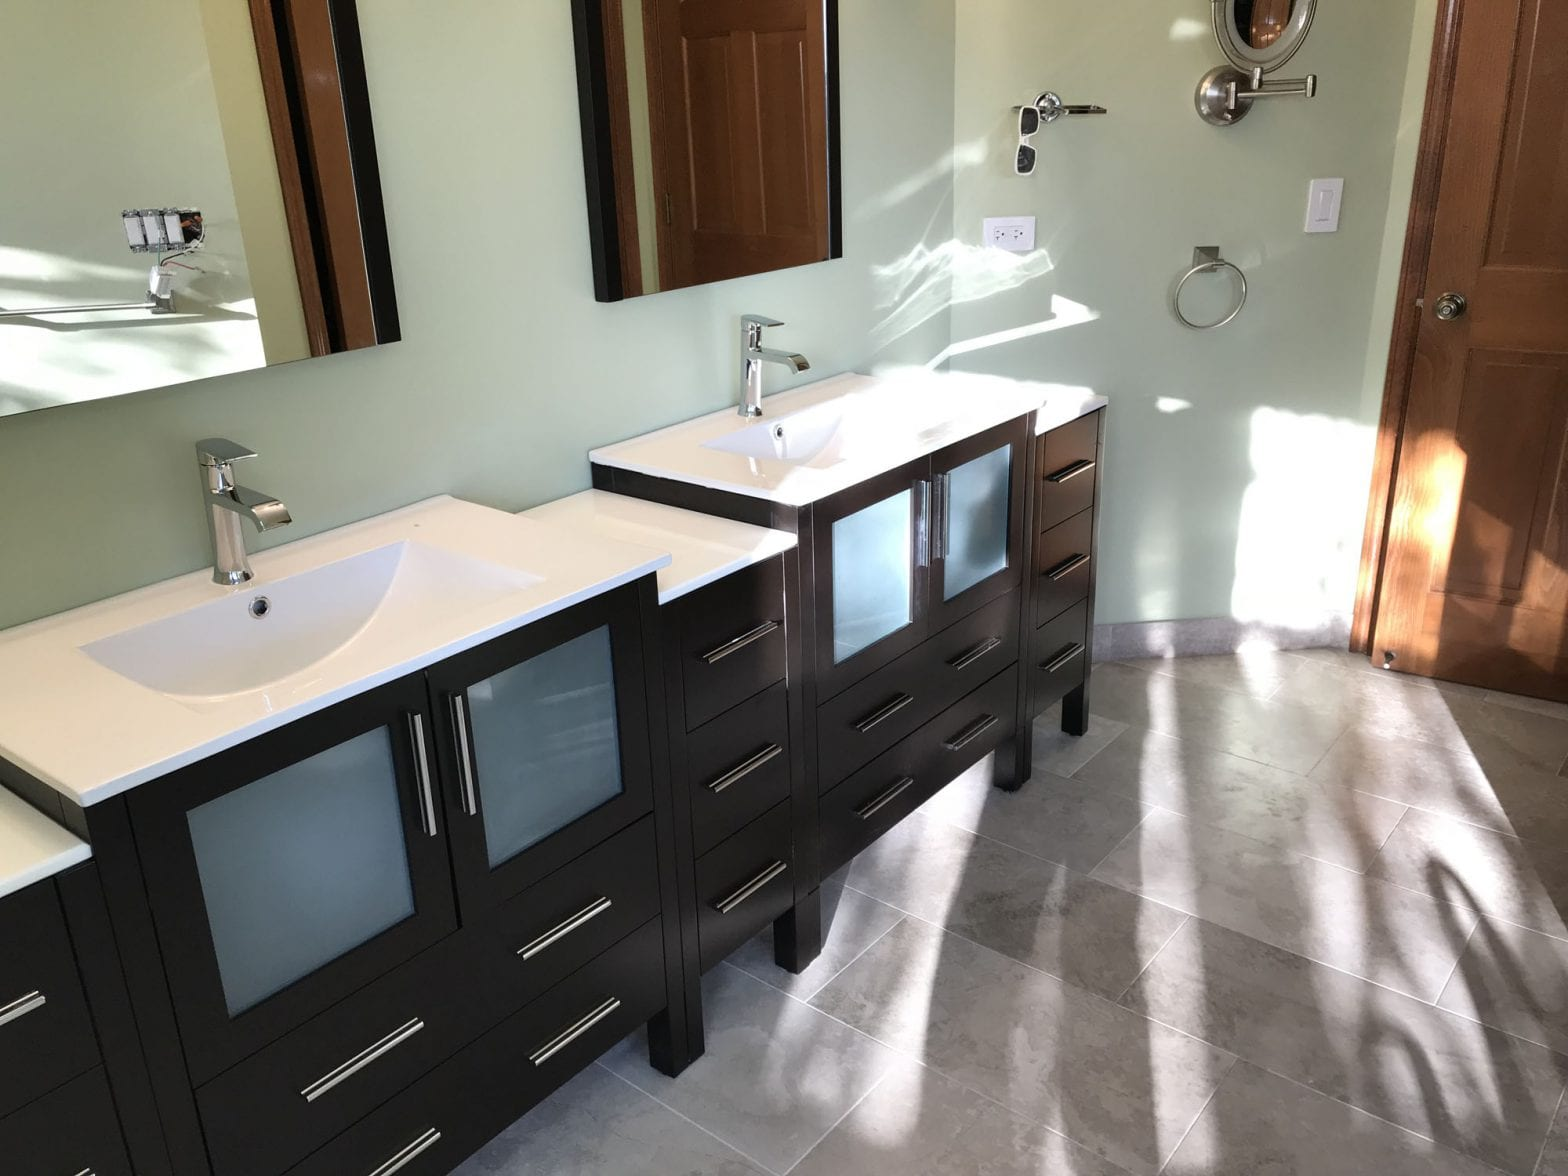 Master Bathroom Remodeling In Hoffman Estates - new cabinets and countertops